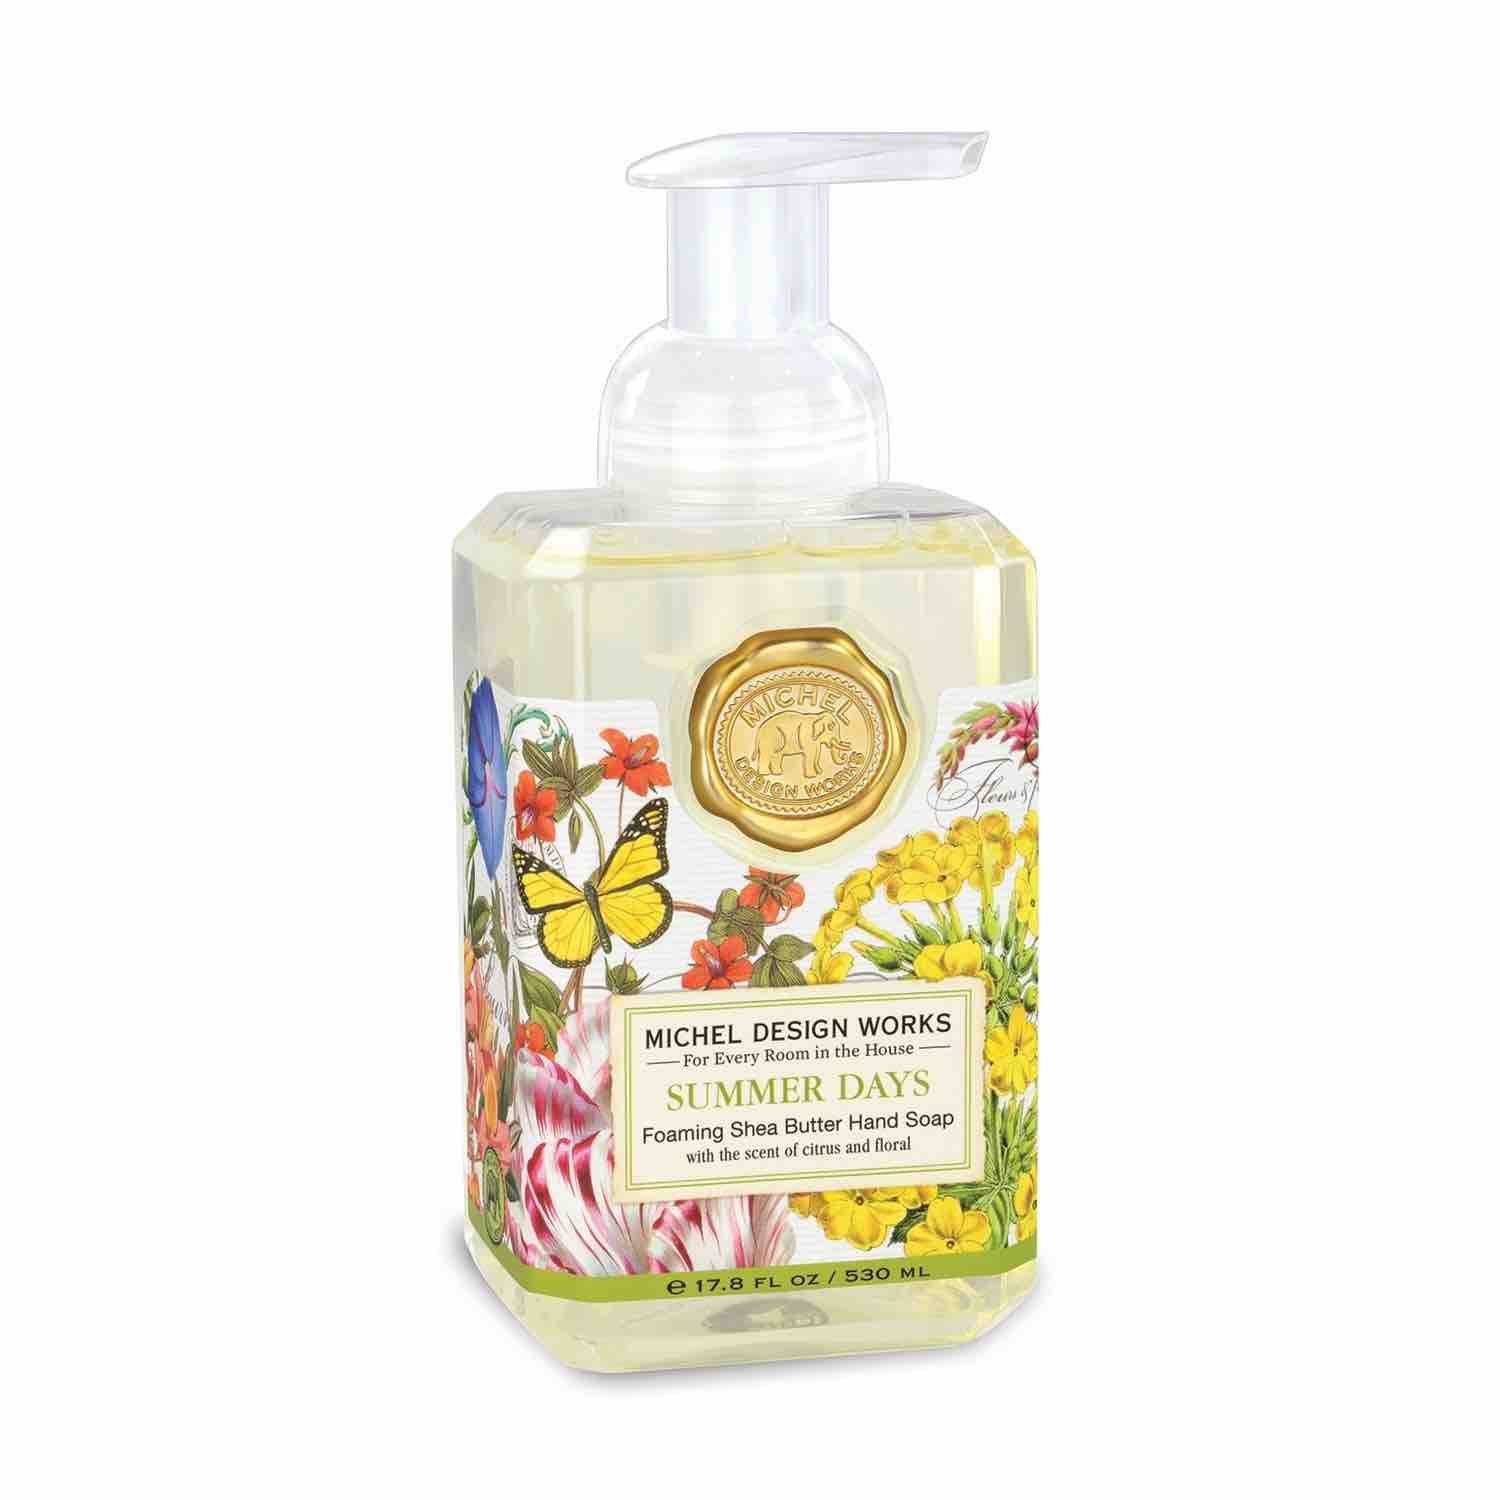 Michel Design Works Foaming Soap | Summer Days